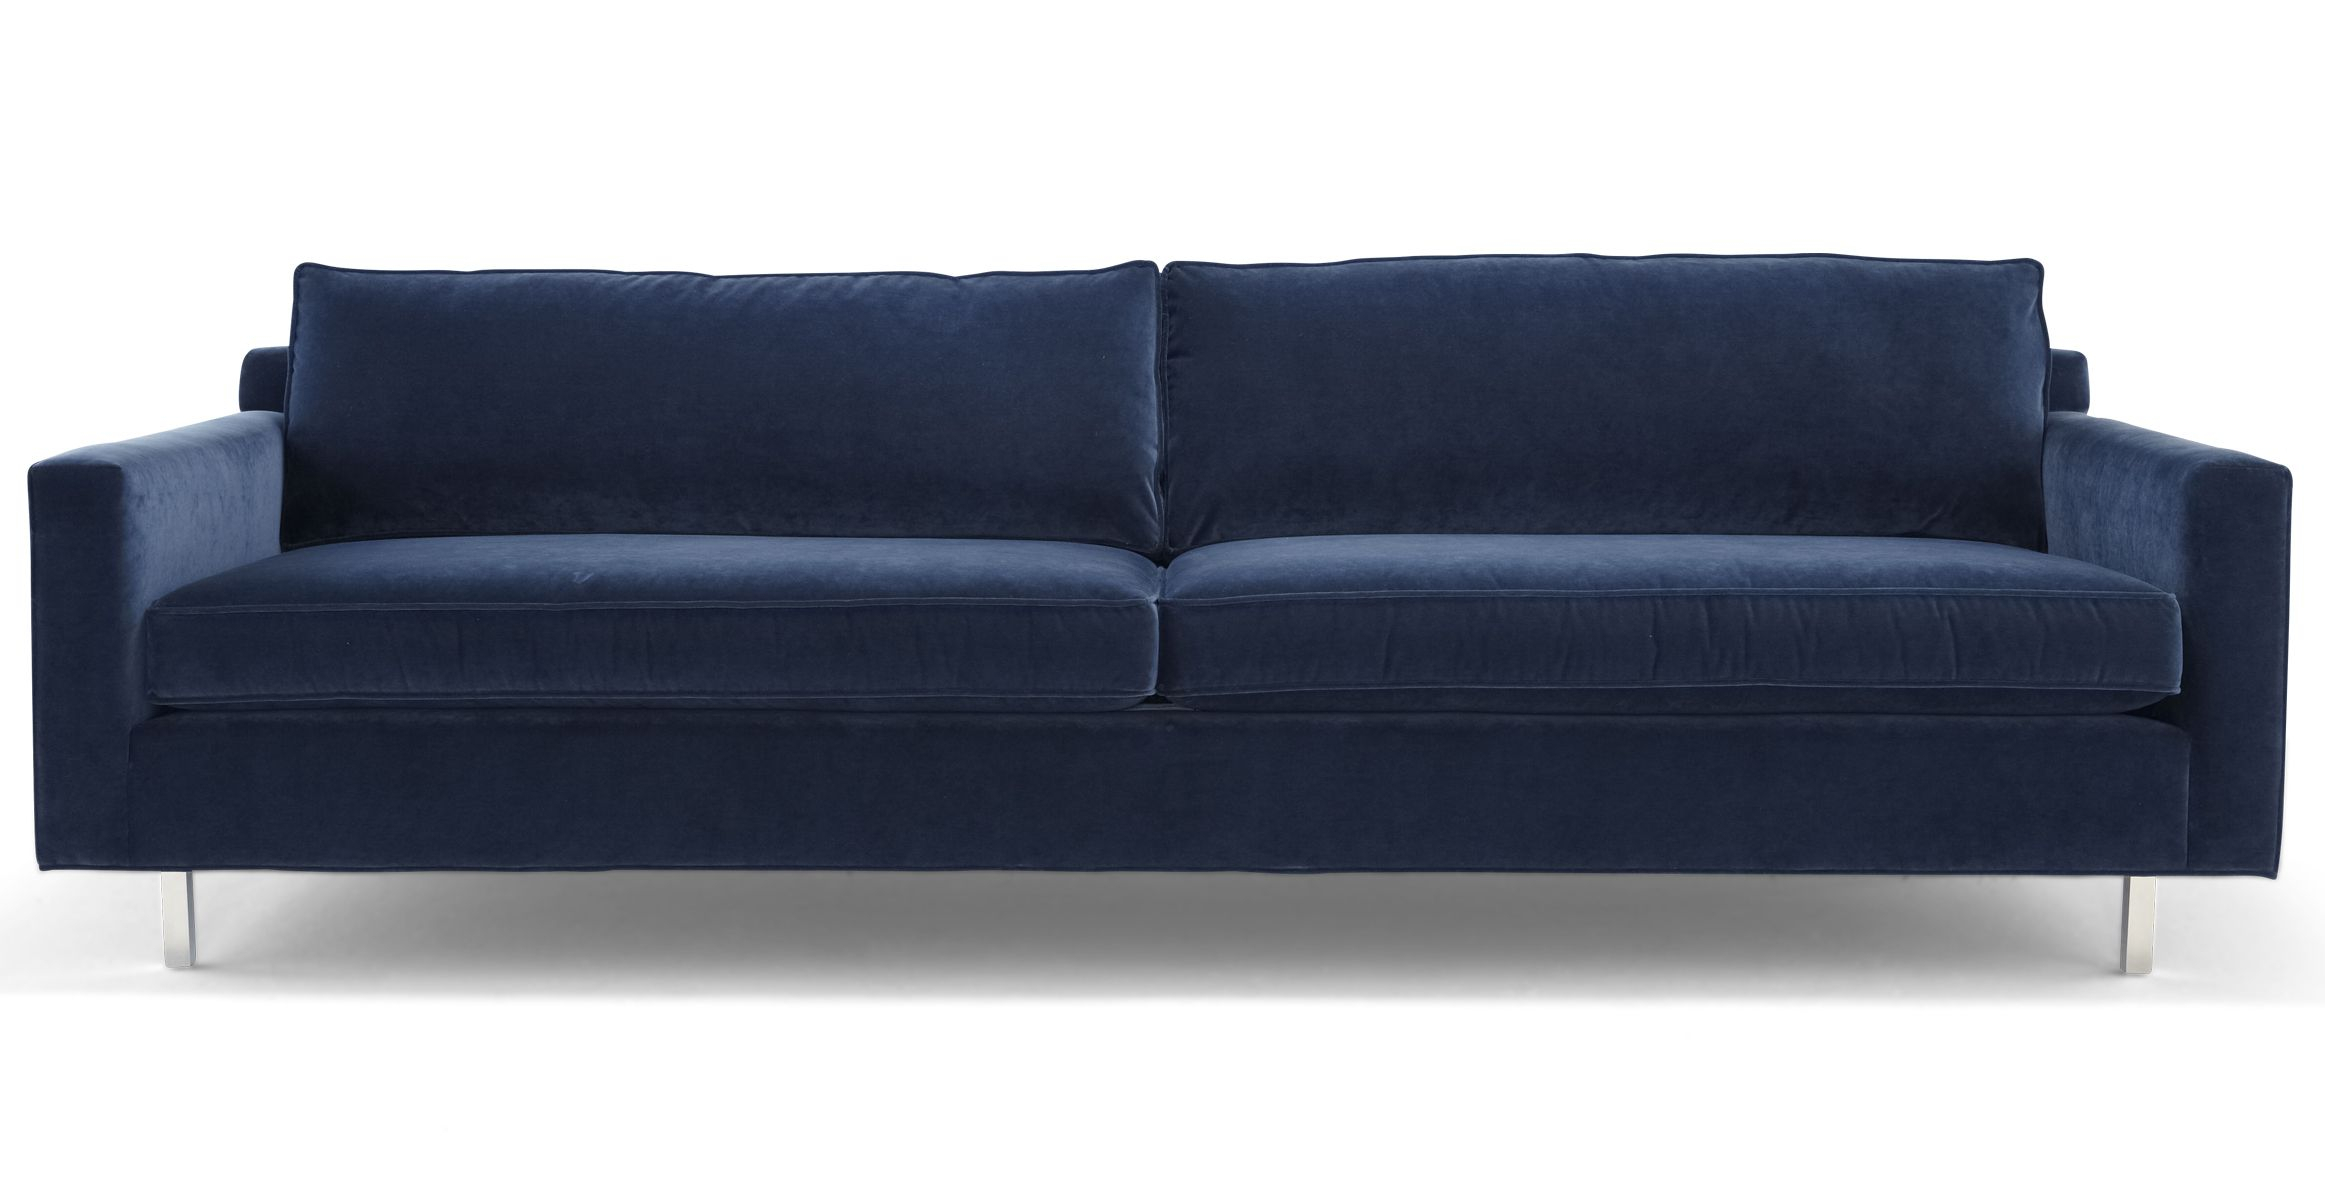 Hunter Wood Leg Sofa – Mitchell Gold + Bob Williams – This Is A More Intended For Mitchell Arm Sofa Chairs (Image 6 of 20)